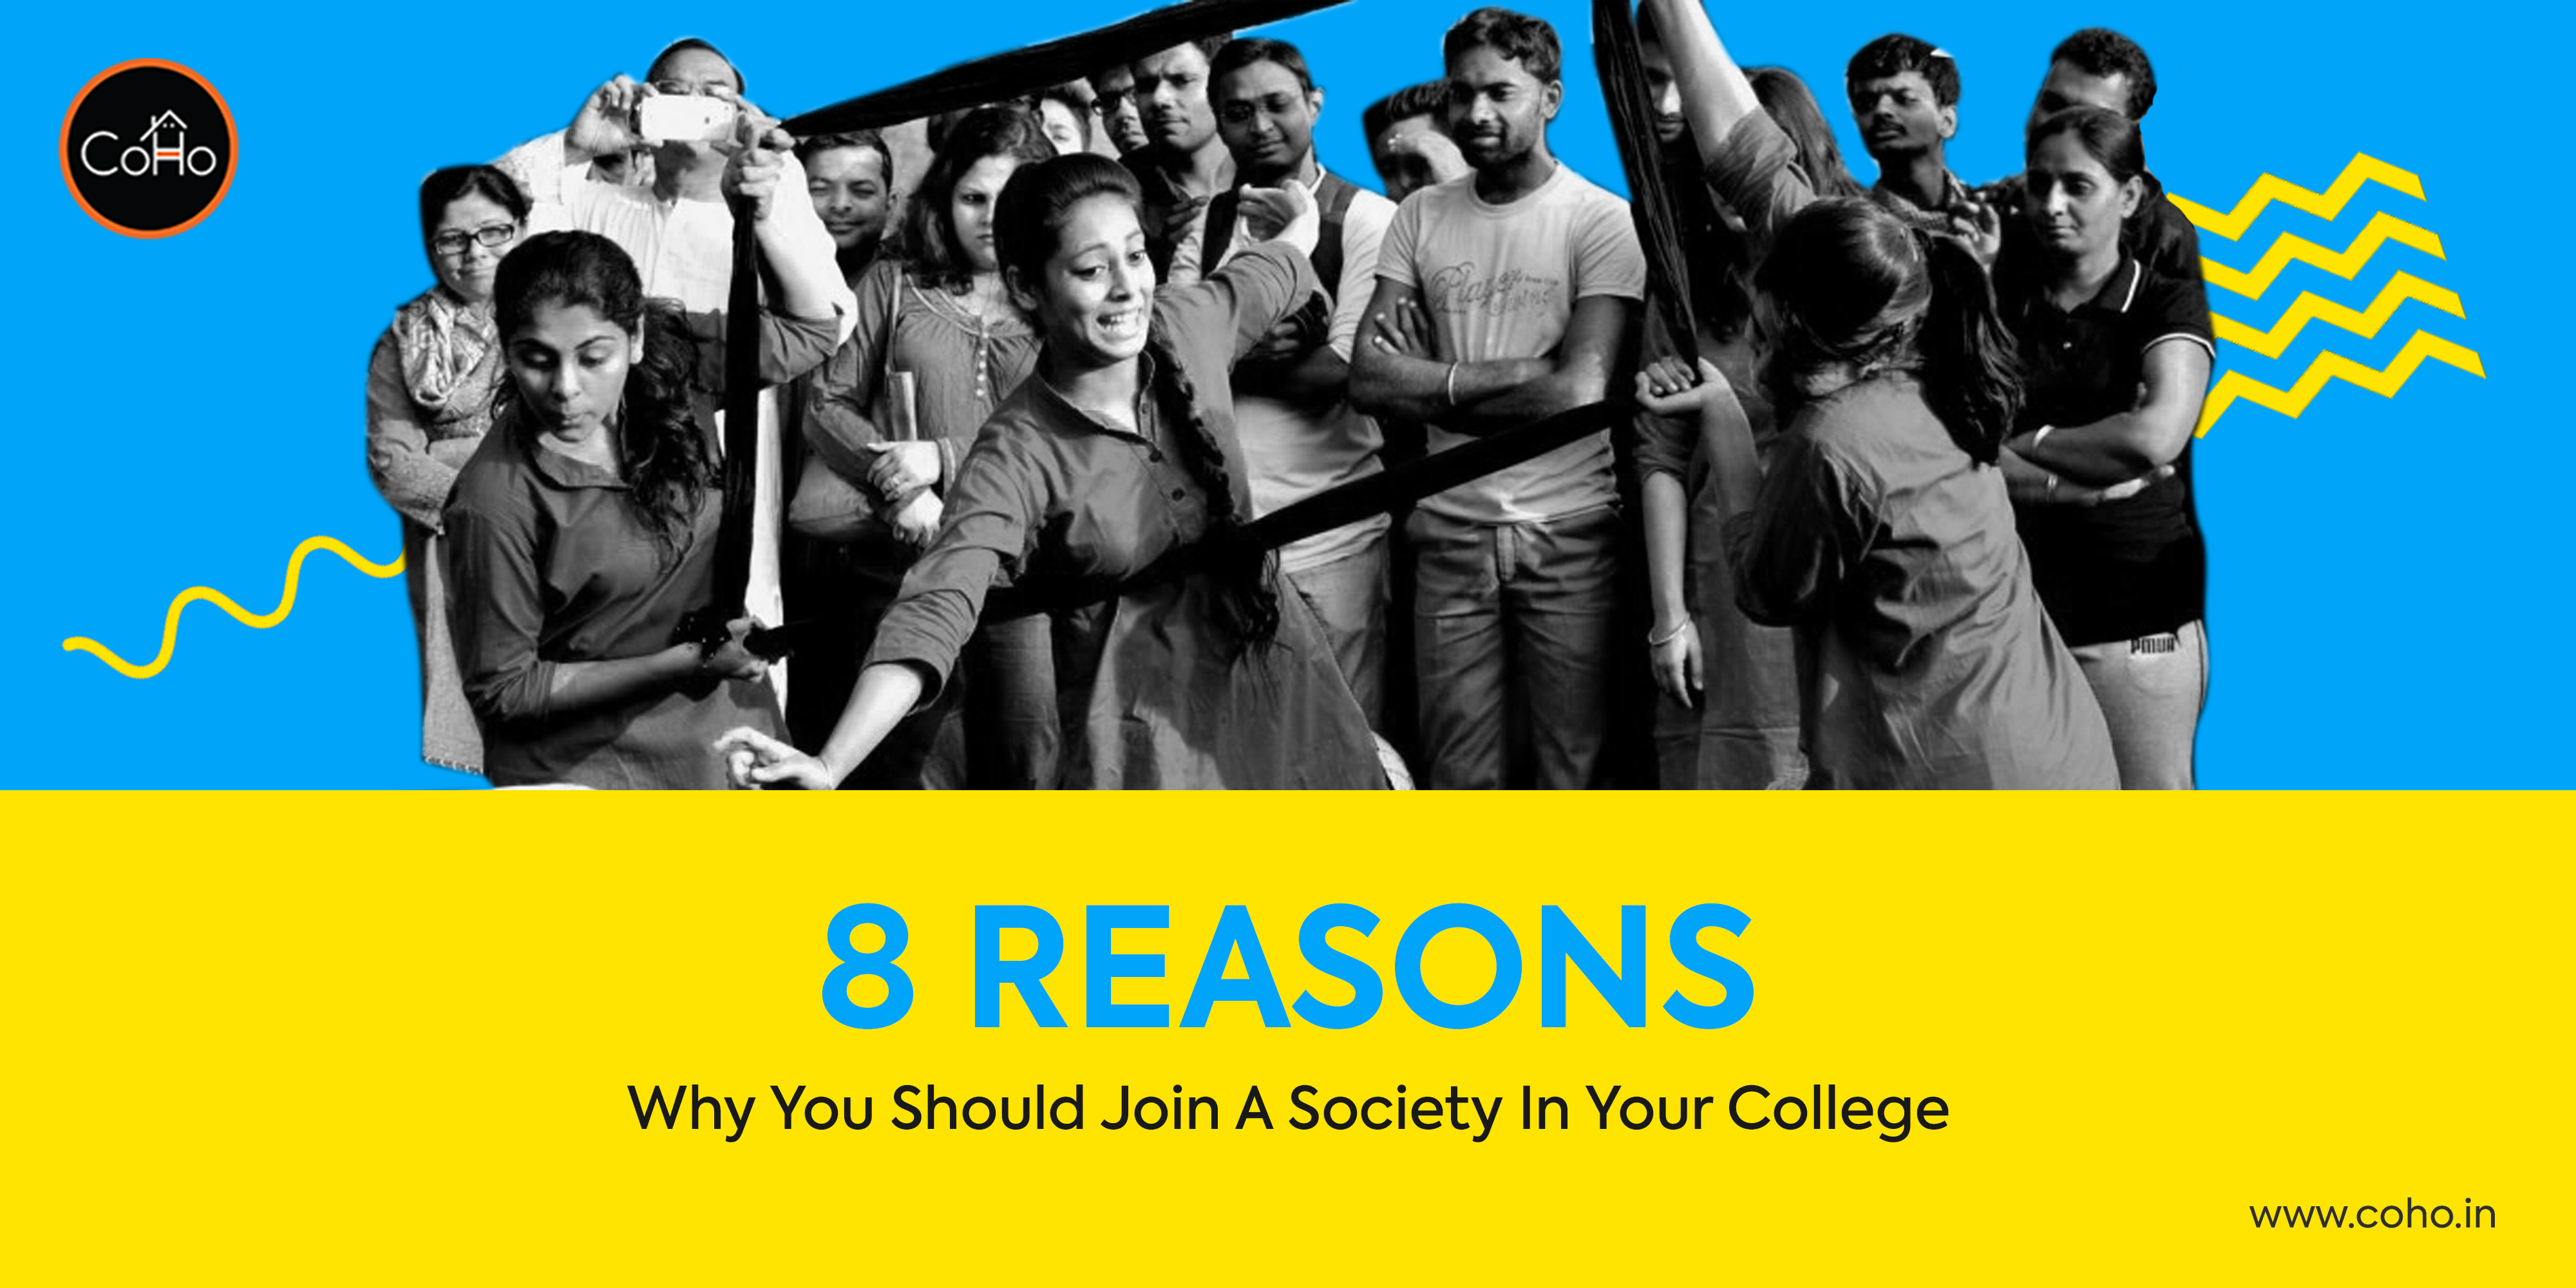 8 Reasons To Join A Society In Your College